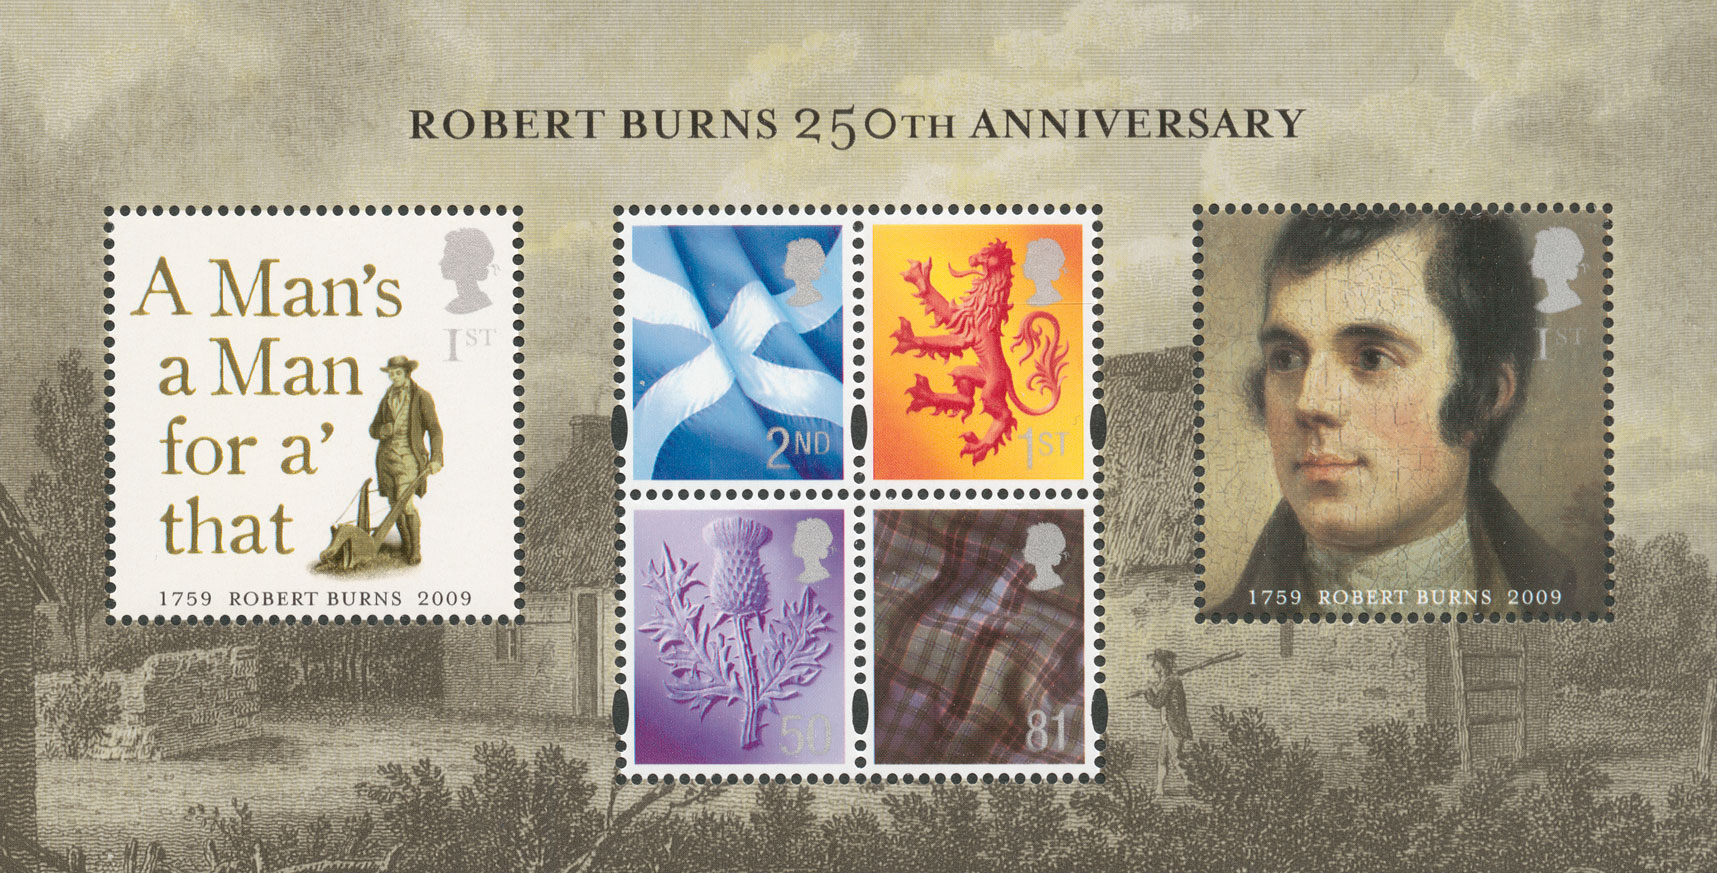 Miniature sheet featuring four Scotland country definitives and two commemorative stamps of a Burns portrait and the title of one of his songs.